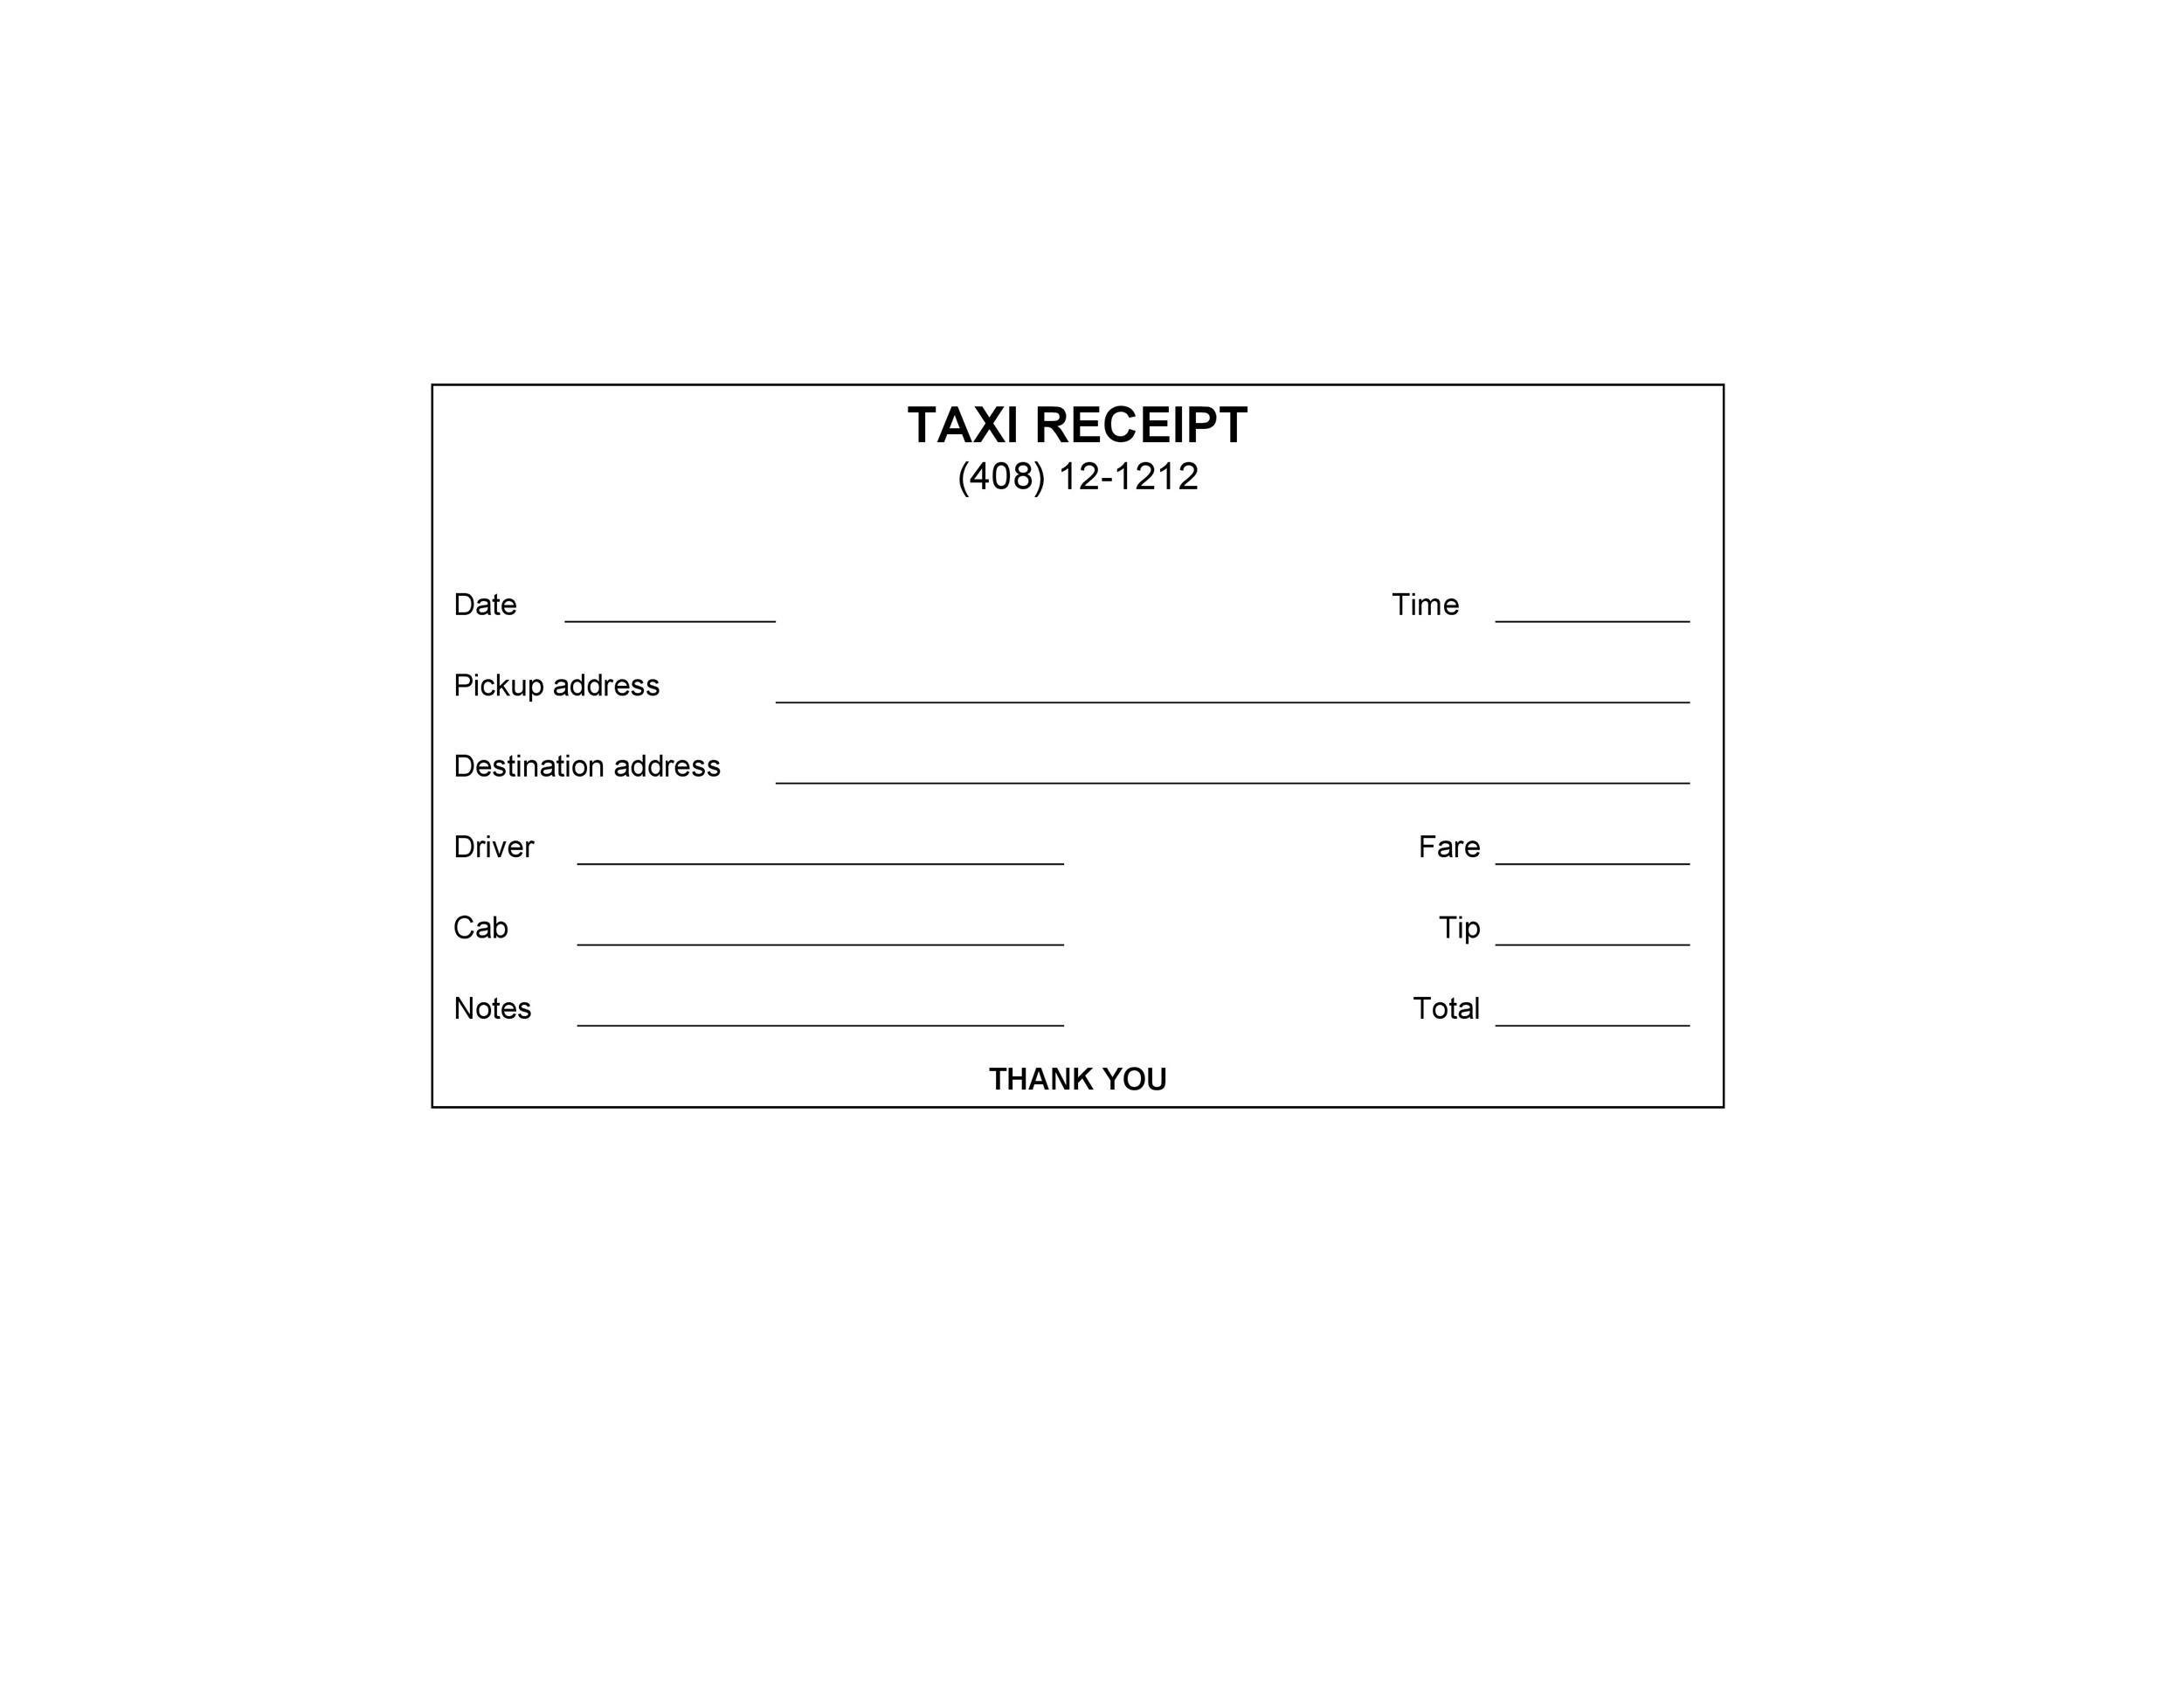 50 Free Receipt Templates Cash Sales Donation Taxi – Bill Payment Receipt Format